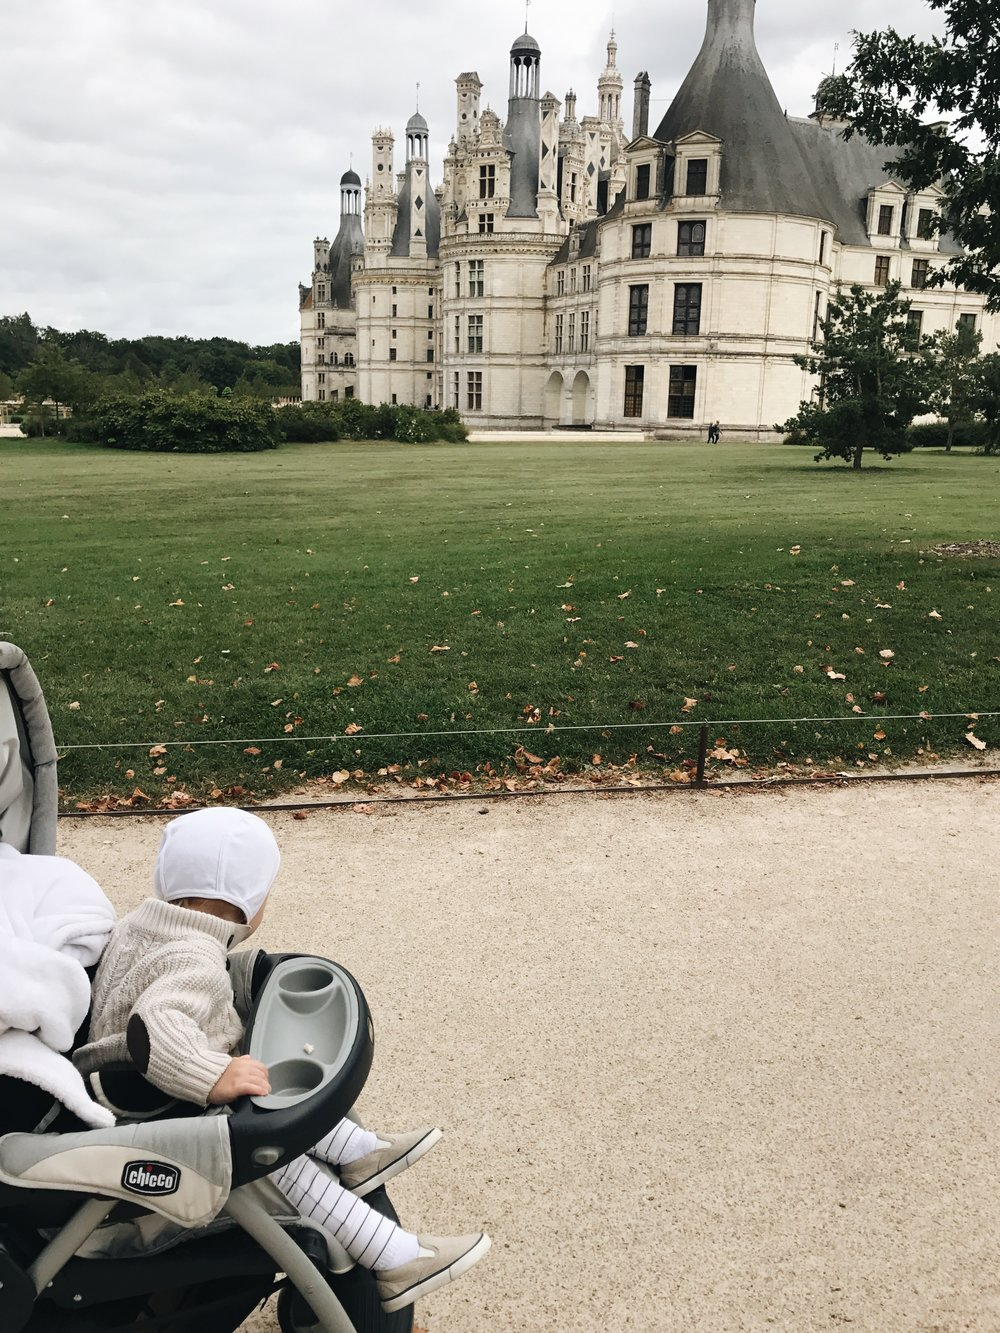 Weston's first glimpse of the chateau. I teared up -- it is such a privliege, gift, and joy to show him the world and he noticed it all and soaked it all in!